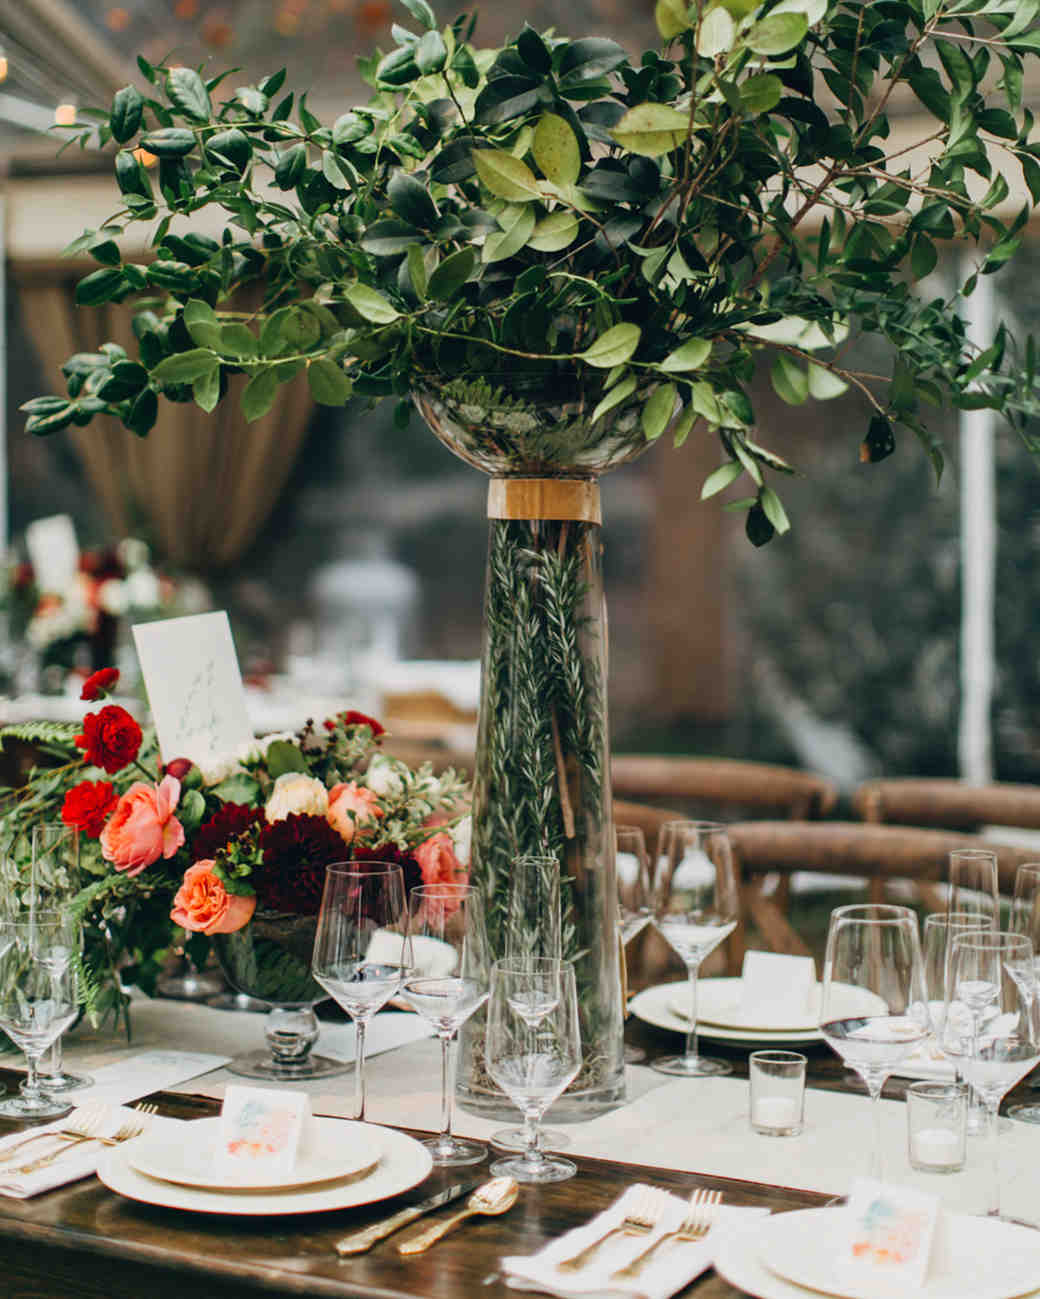 Affordable Wedding Centerpiece Ideas: Tall Centerpieces That Will Take Your Reception Tables To